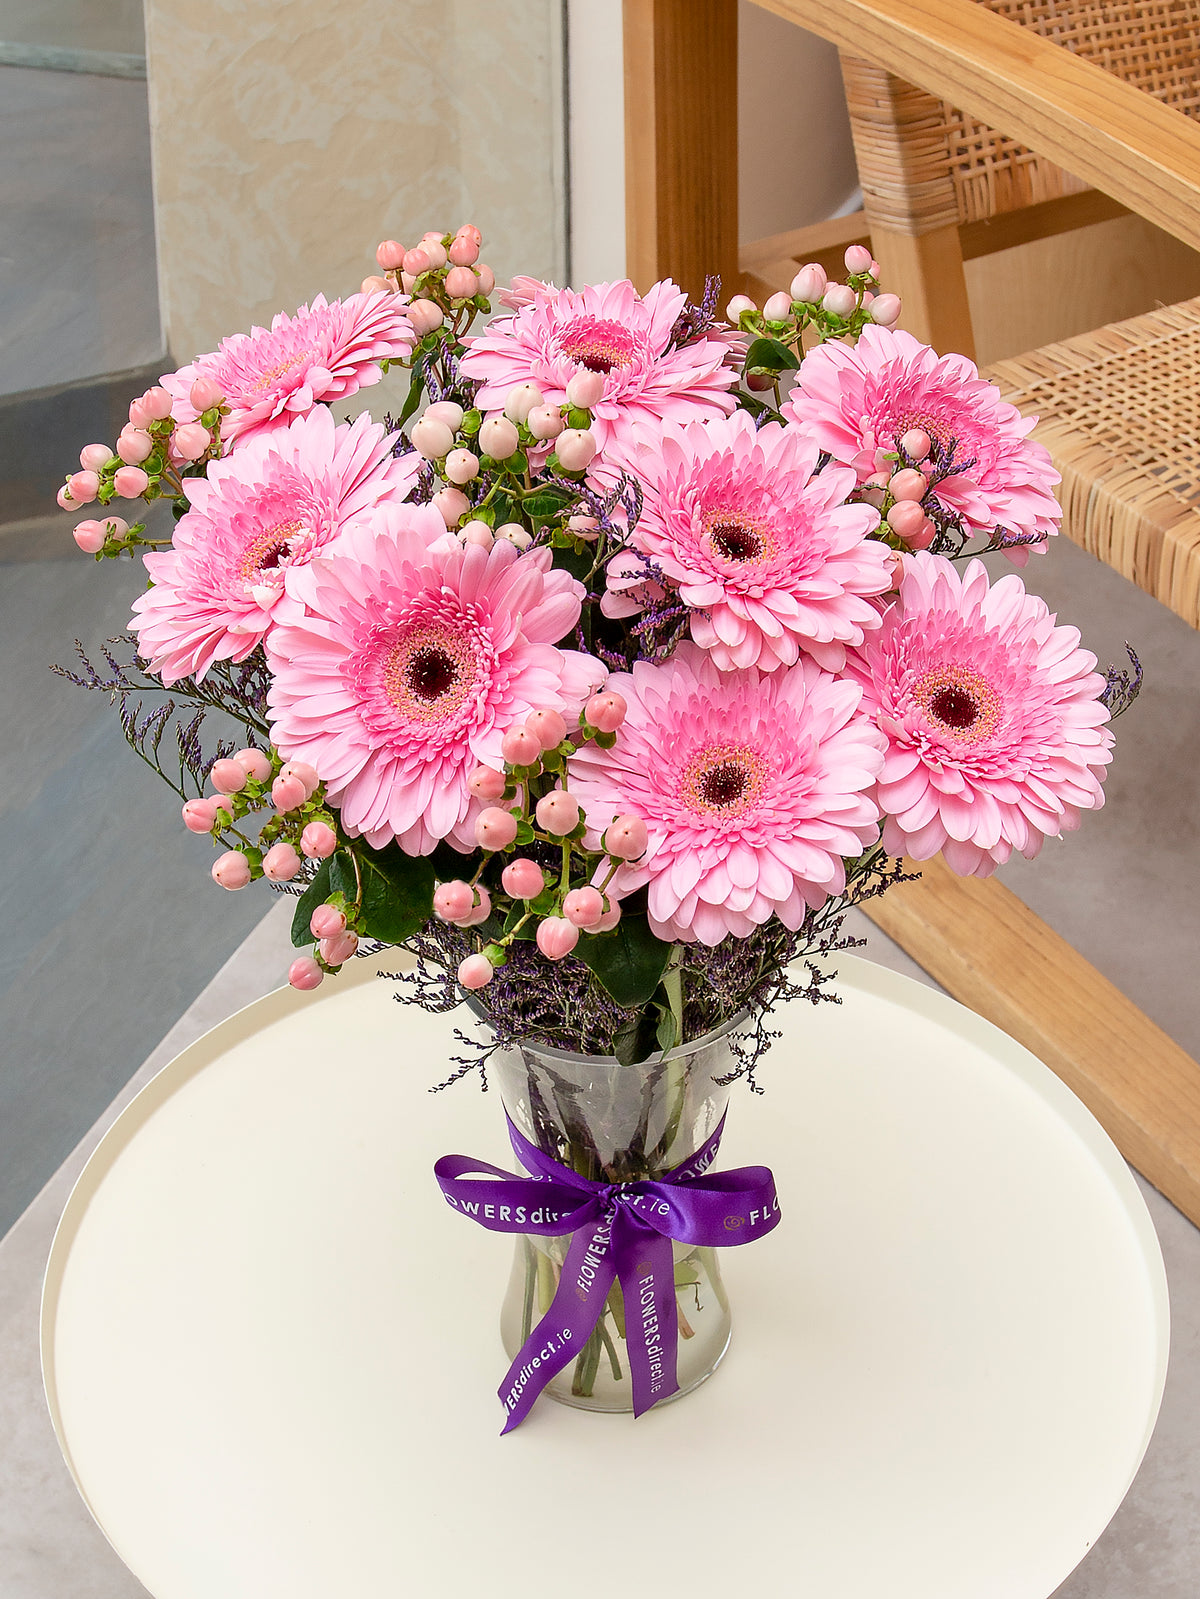 Pink Opera Flower arrangement in a Vase